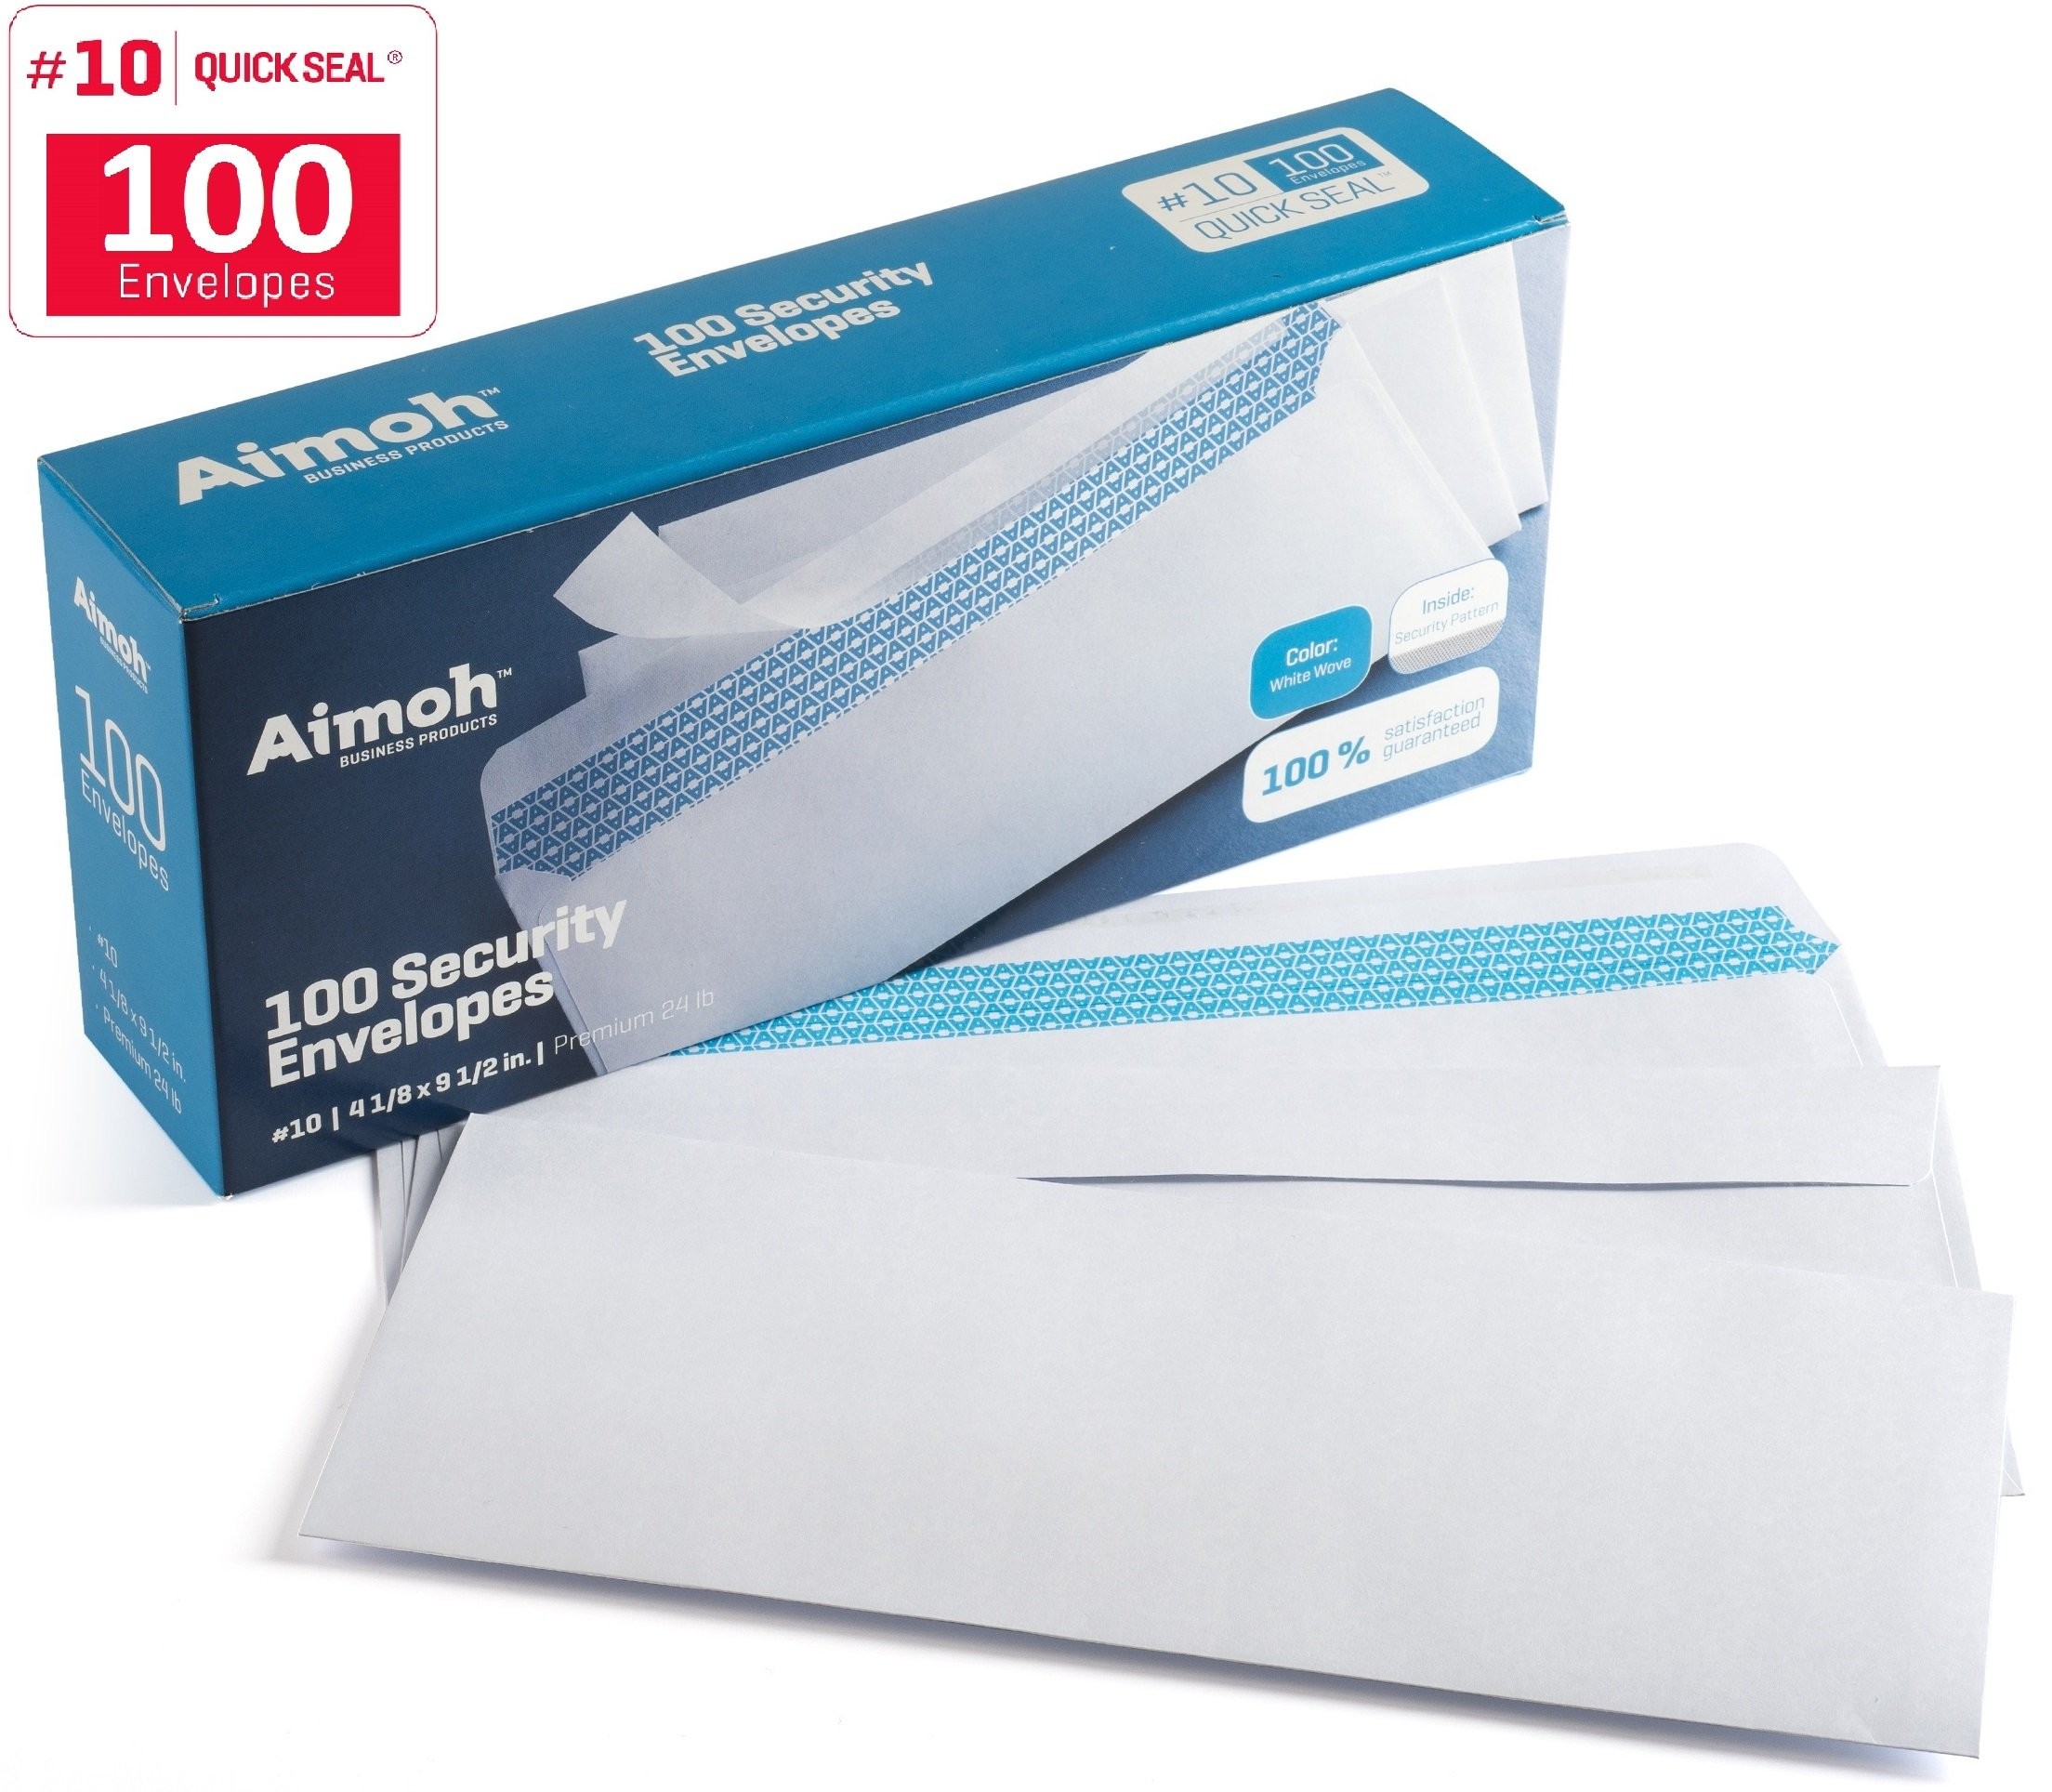 100 #10 Security SELF SEAL Envelopes - No Window, Premium Security Tint, Ideal for Home Office Secure Mailing, QUICK-SEAL Closure - 4-1/8 x 9-1/2 Inches - White - 24 LB - 100 Per Box (34100)